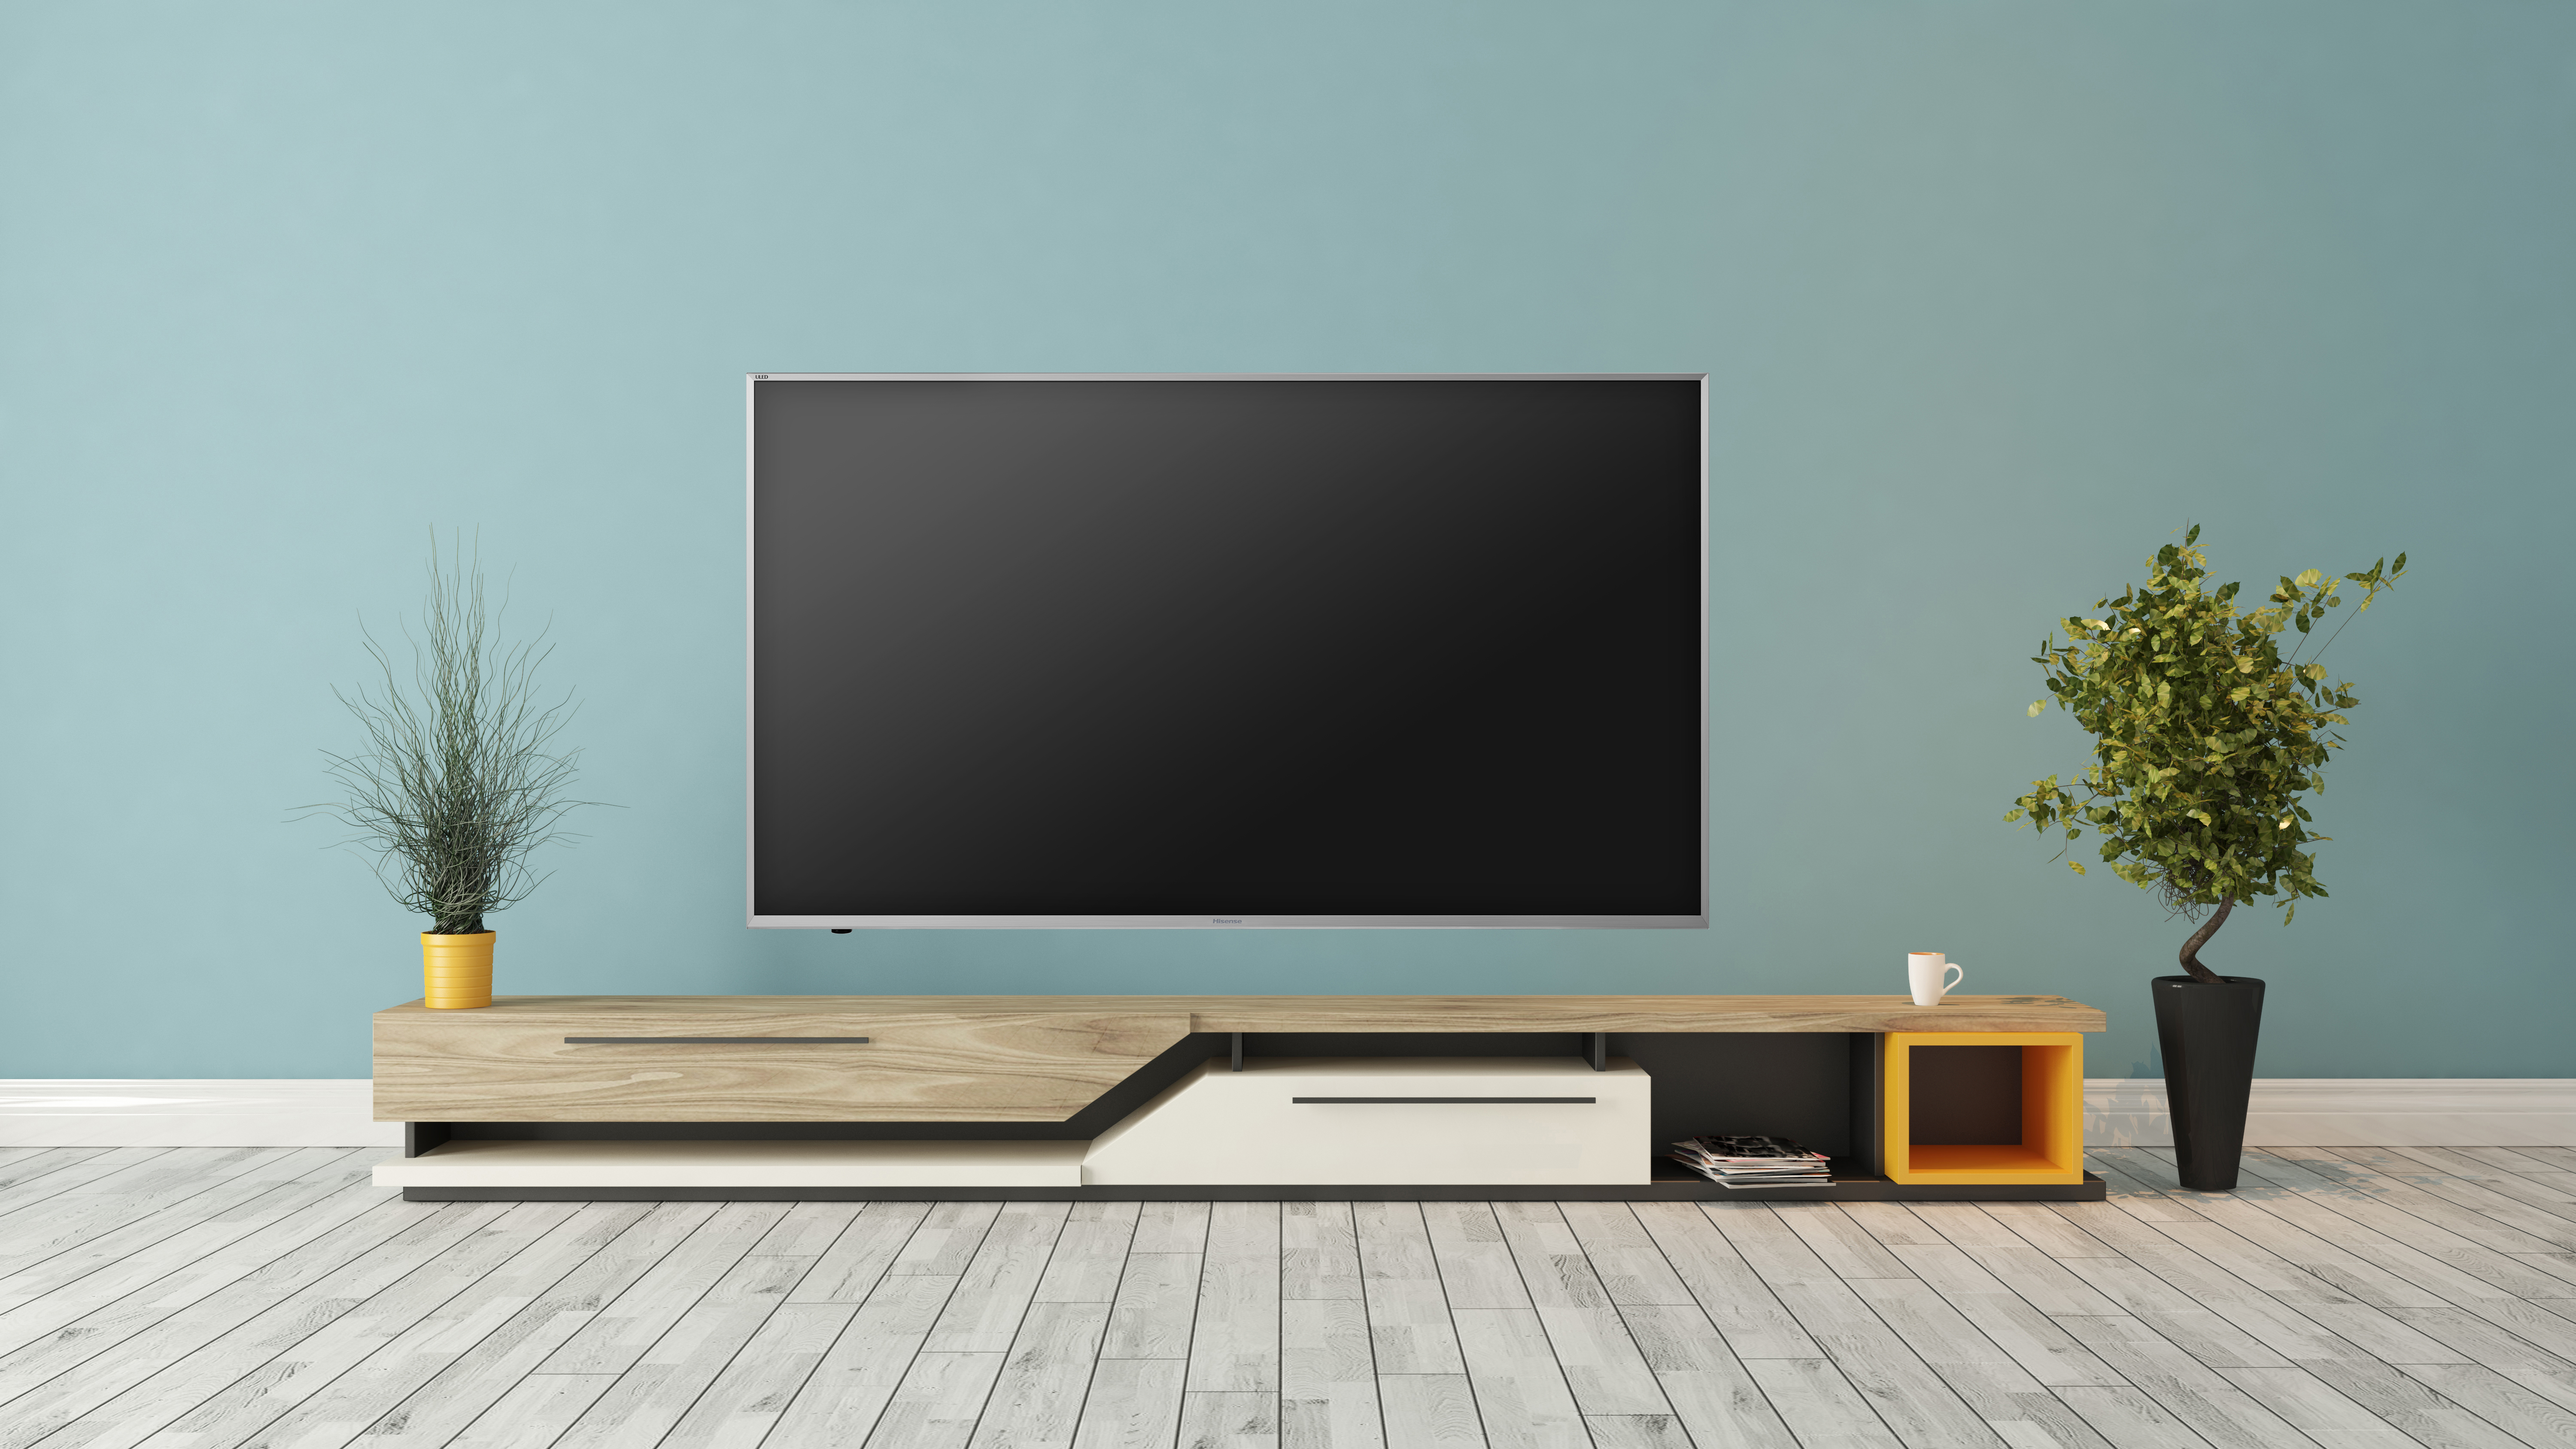 Hisense Series 7 TV pricing for 2017 announced - slight bump